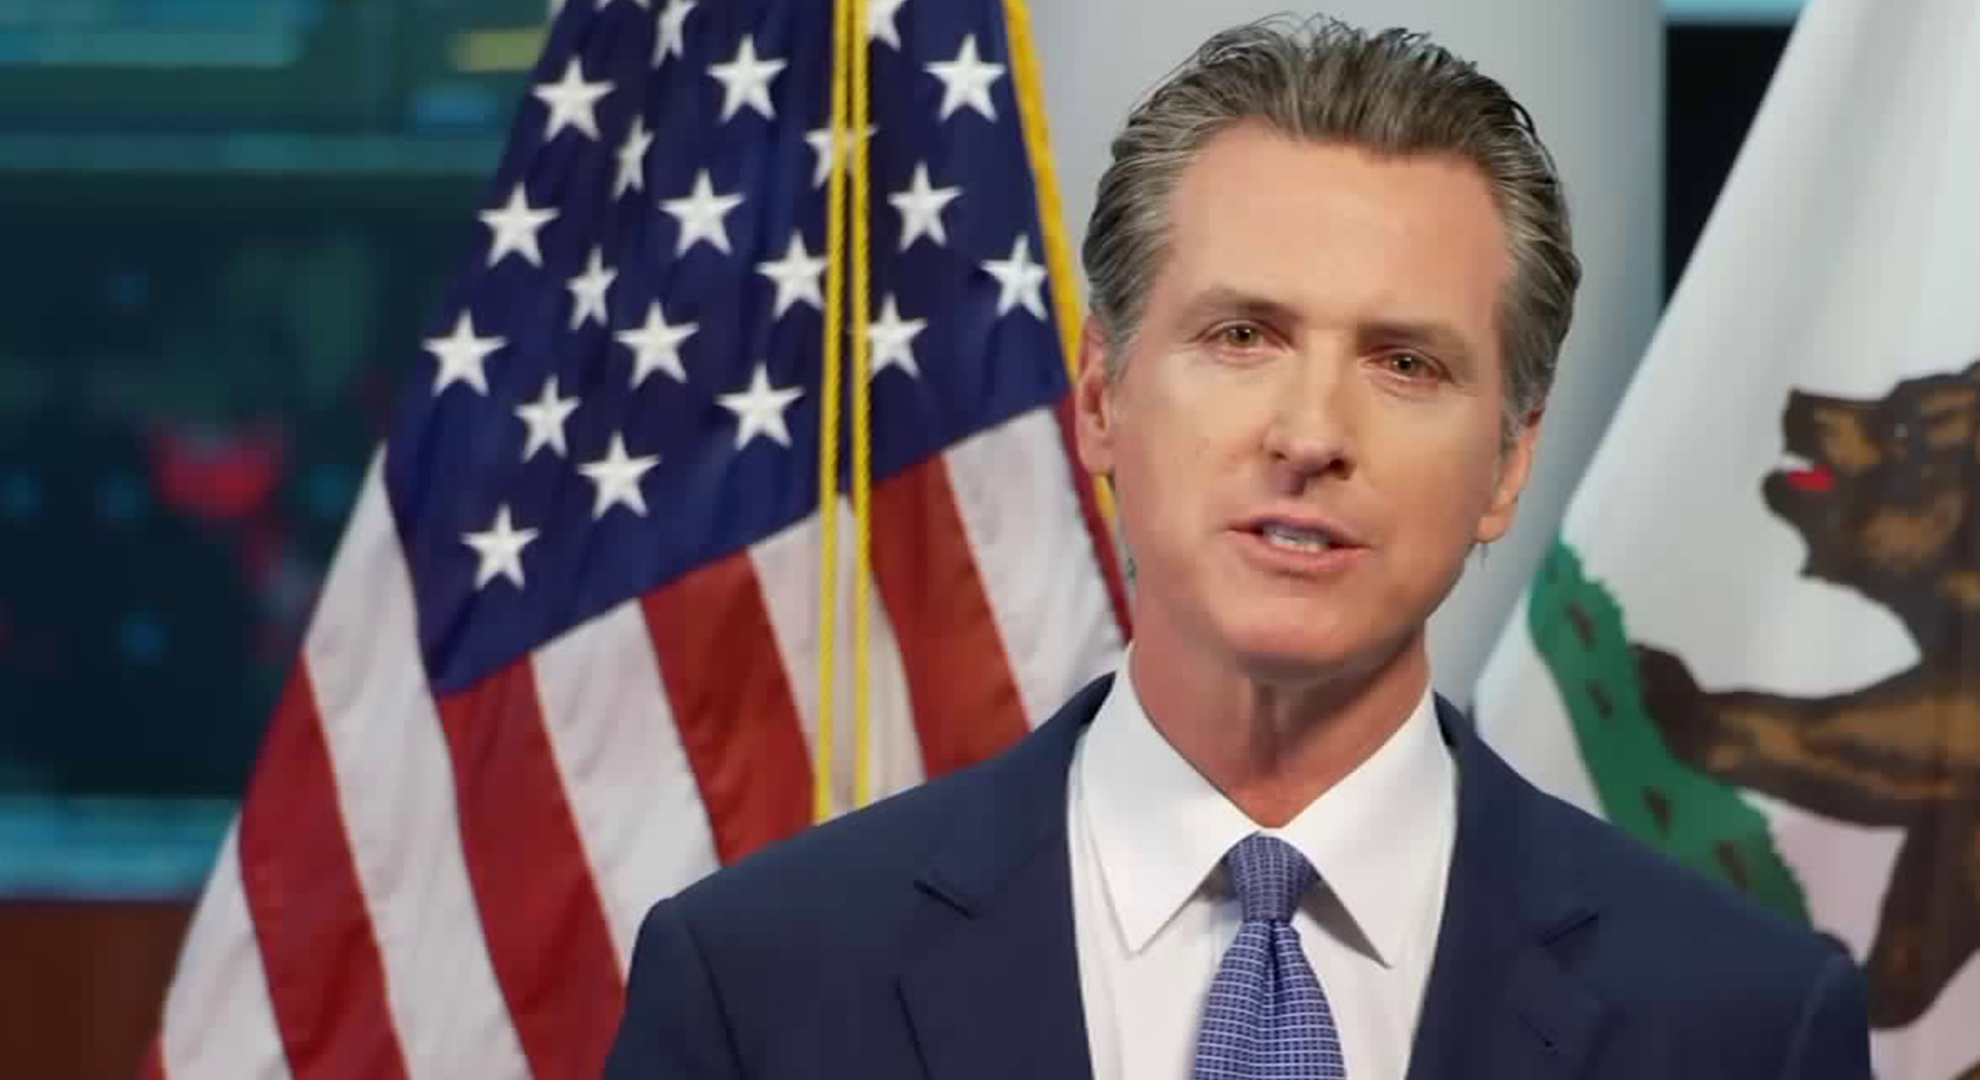 California Gov. Gavin Newsom addresses the COVID-19 outbreak in the state during a livestream on April 1, 2020.